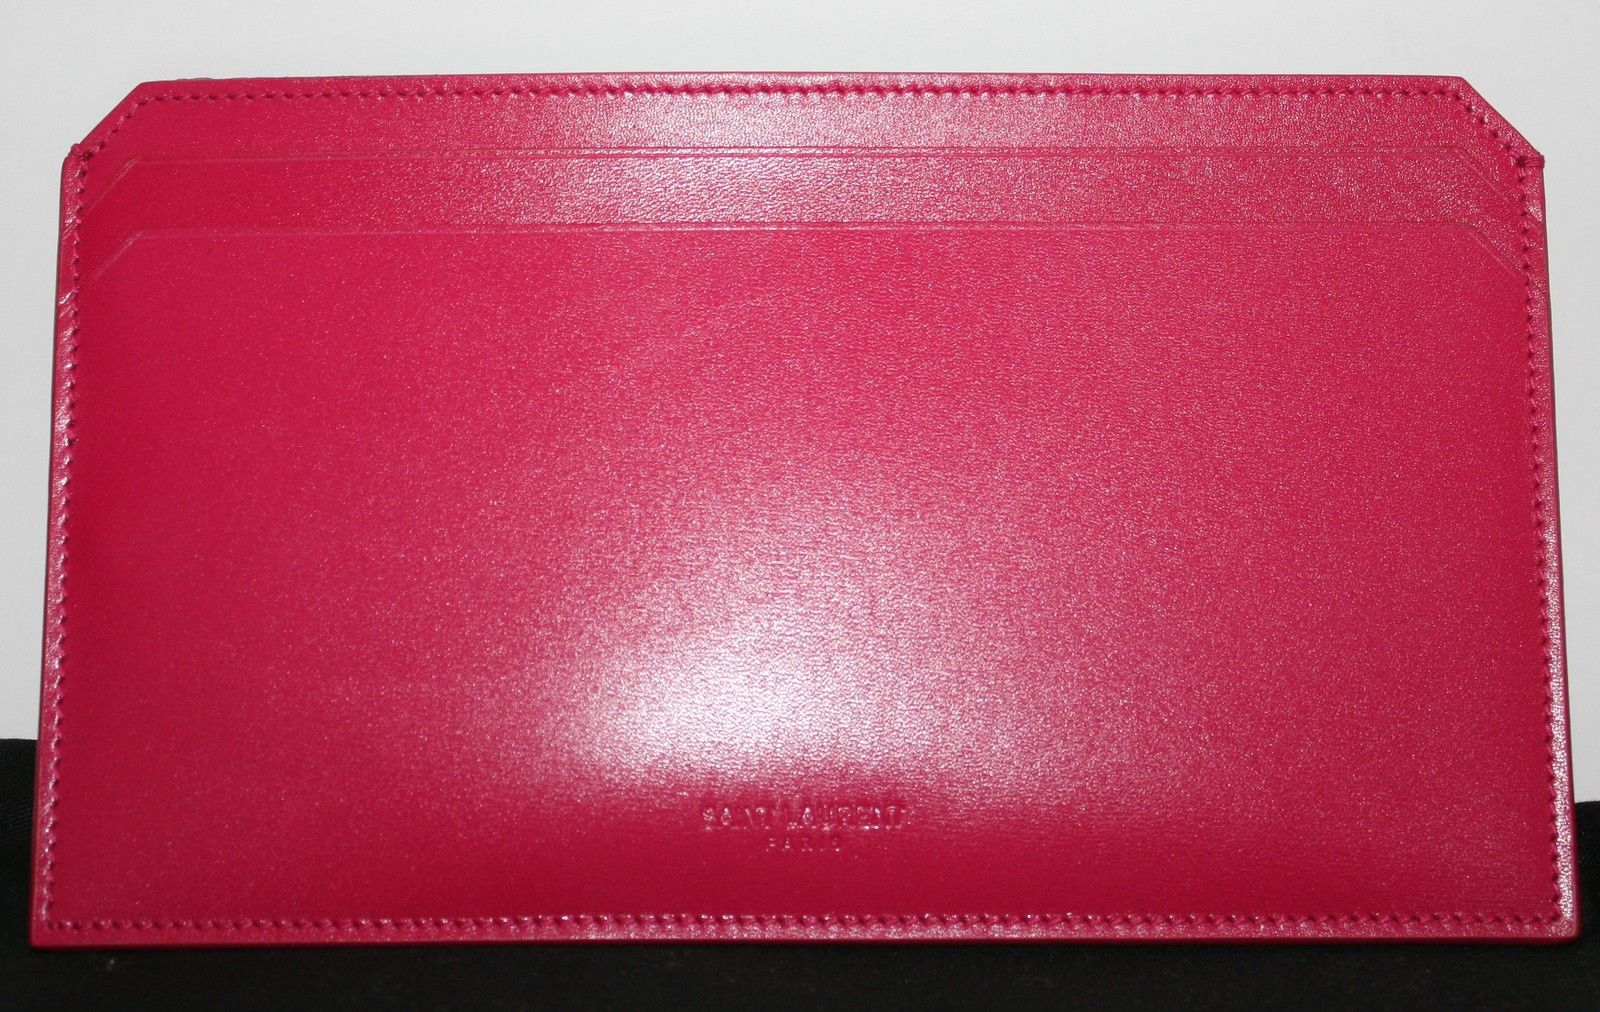 d202d4aa274 YSL Yves Saint Laurent Paris Fuschia Pink Travel Wallet | LuxLu